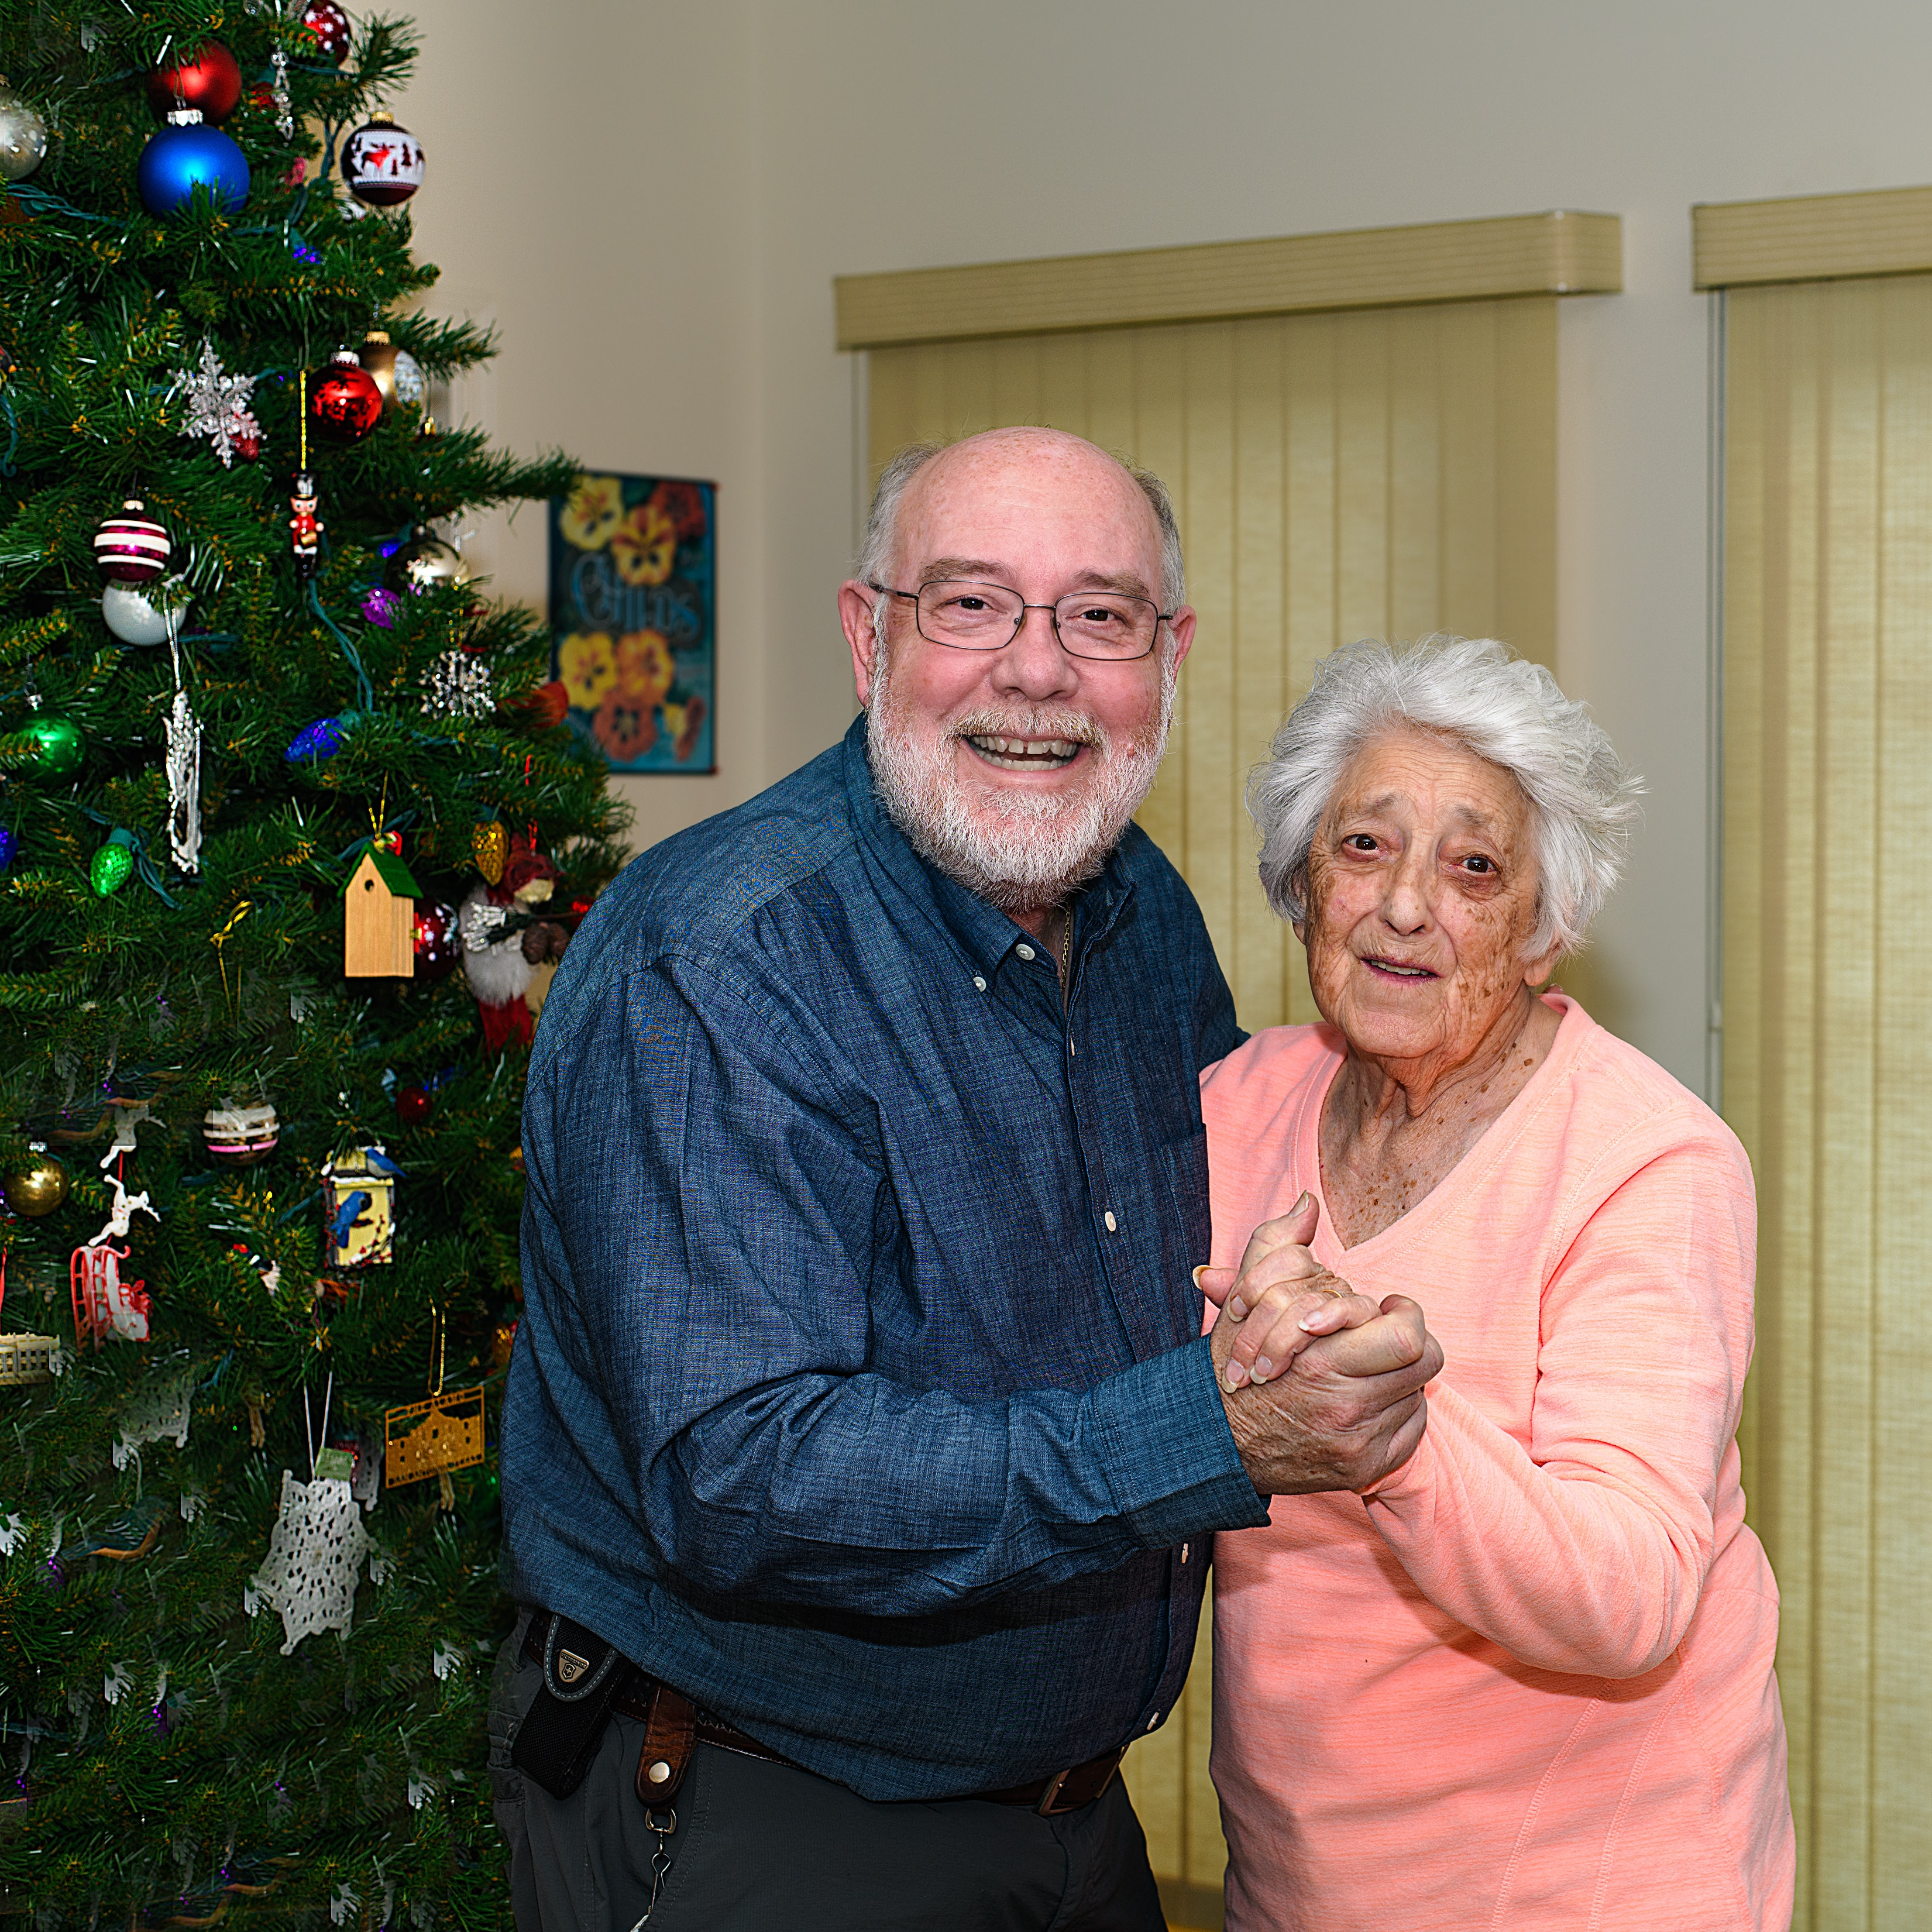 man and woman holding each other's hands beside Christmas tree